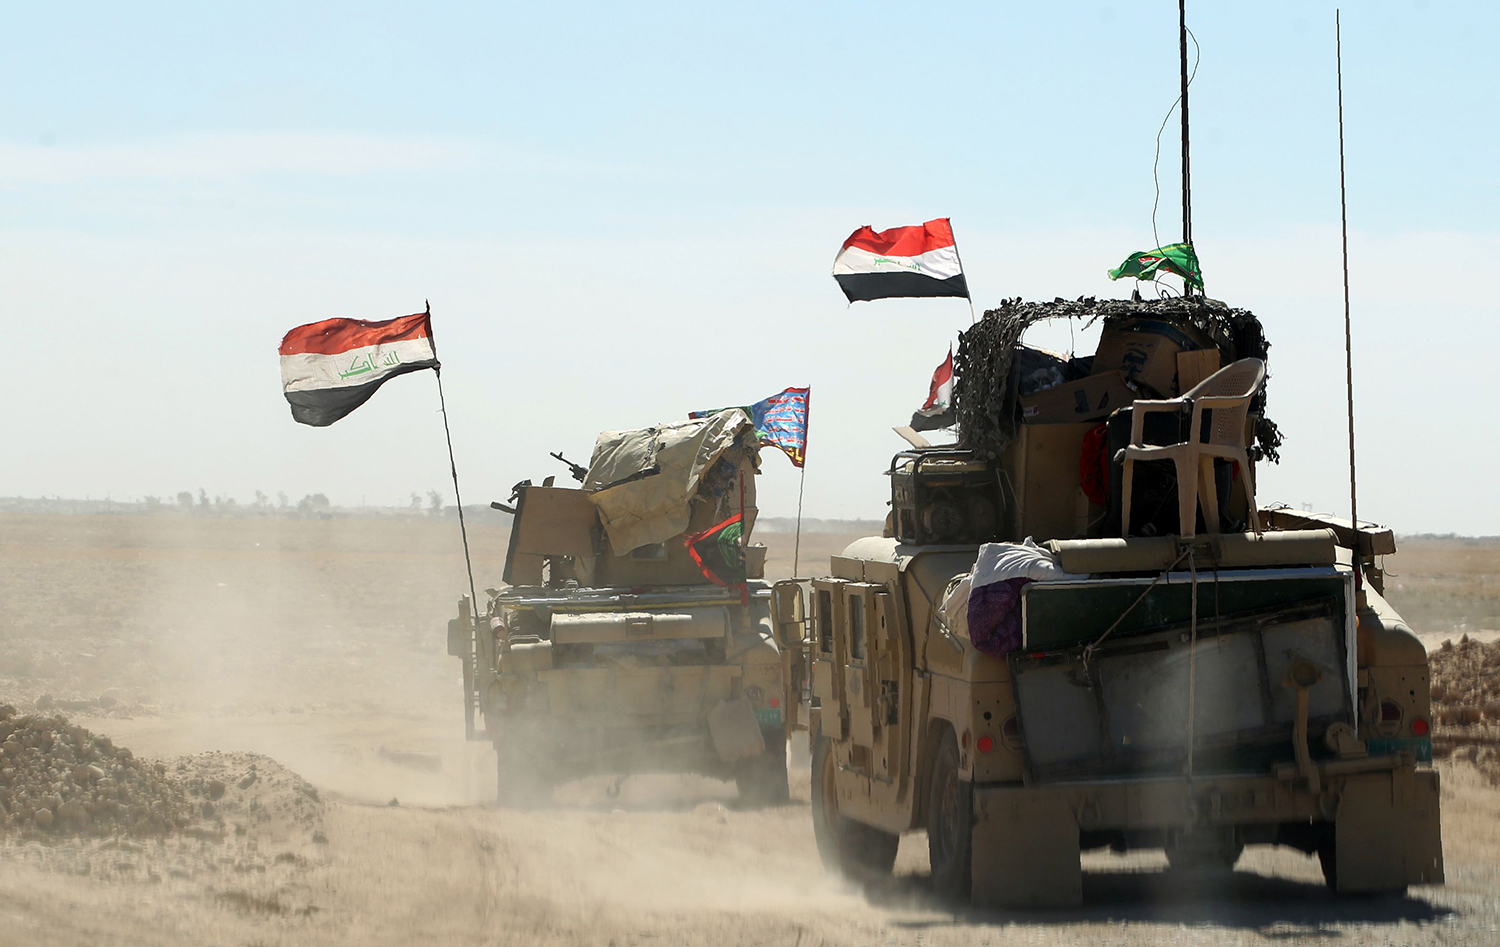 Iraqi forces gather at the Qayyarah military base, about 60 kilometres (35 miles) south of Mosul, on October 16, 2016, as they prepare for an offensive to retake Mosul, the last IS-held city in the country, after regaining much of the territory the jihadists seized in 2014 and 2015. / AFP PHOTO / AHMAD AL-RUBAYE / TT / kod 444